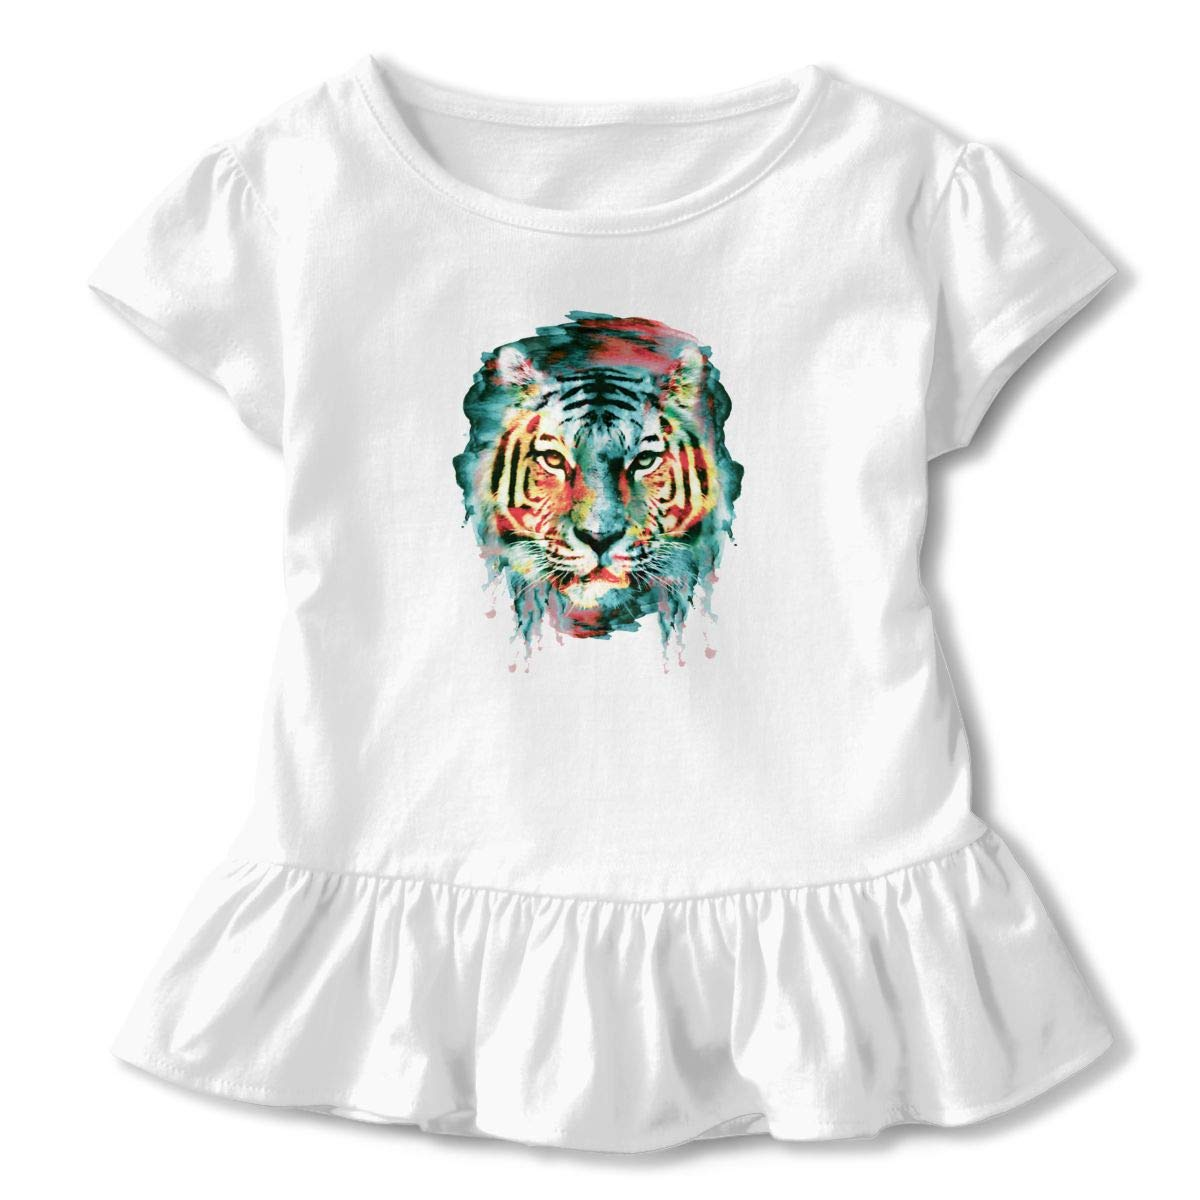 CZnuen Lion Owl Wolf Tiger Cat Watercolor Animal Baby Girls Round Neck Short Sleeve Ruffle T-Shirt Top